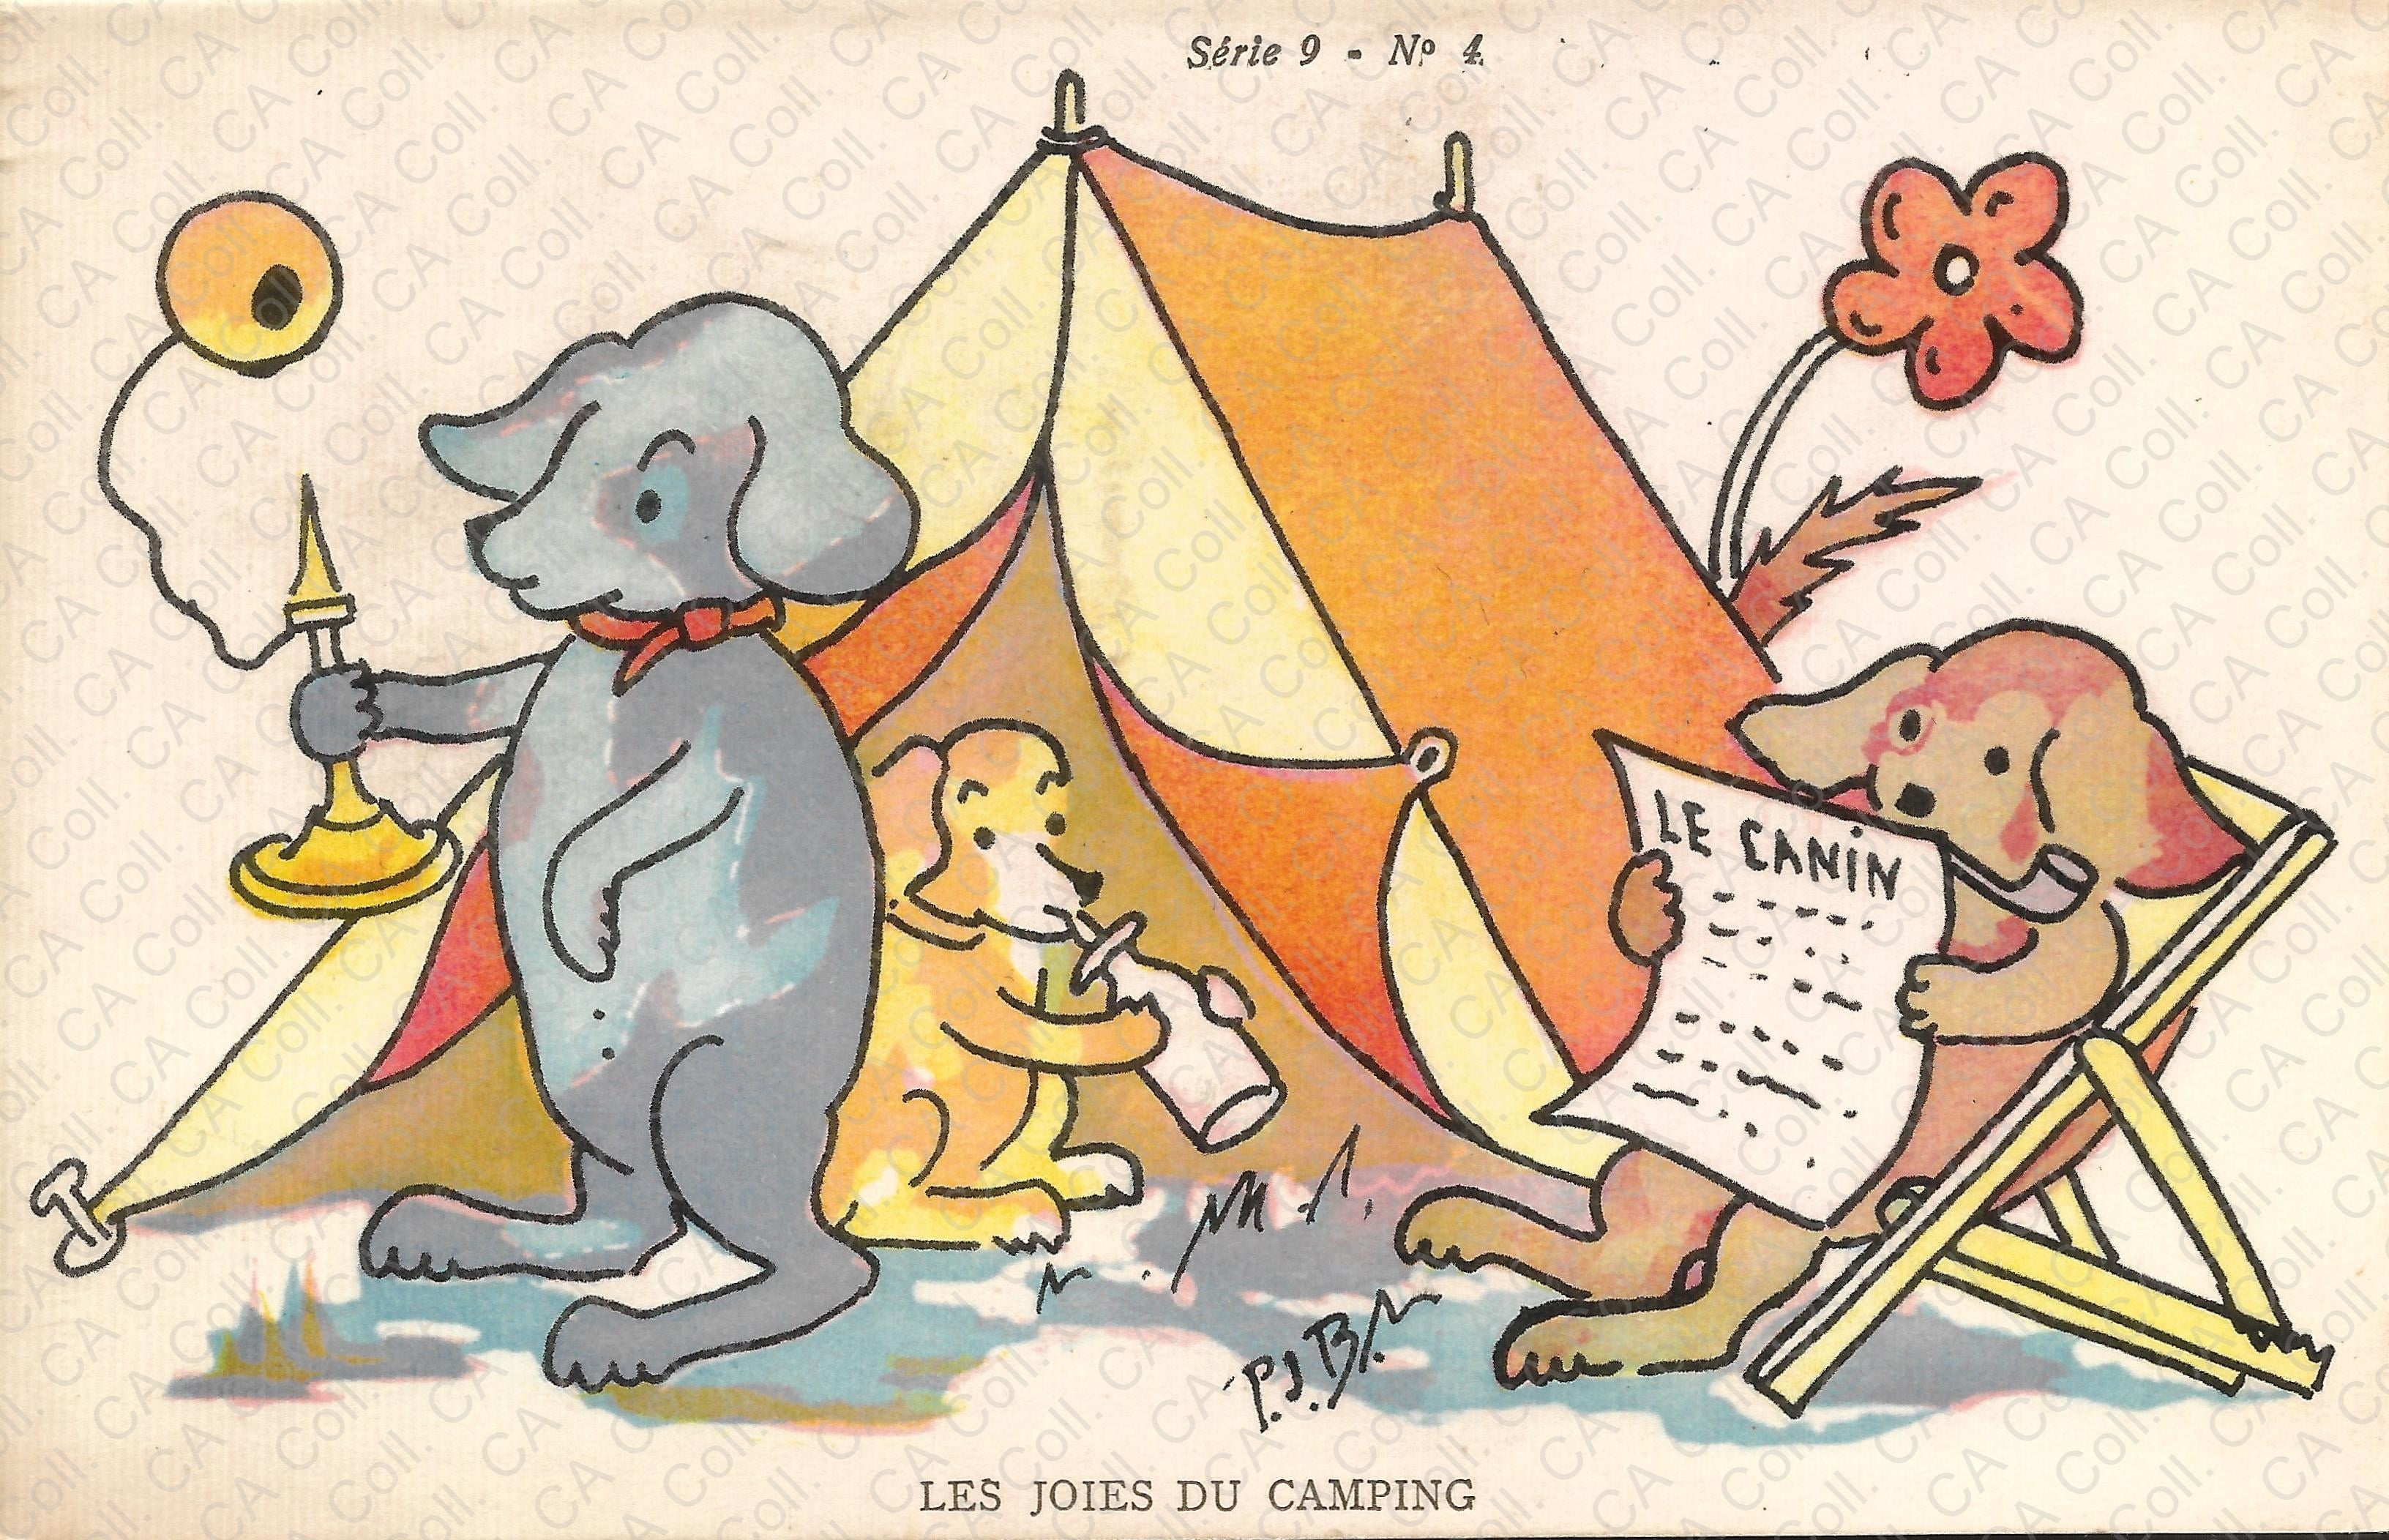 Joie_du_camping_serie9_n4_rect